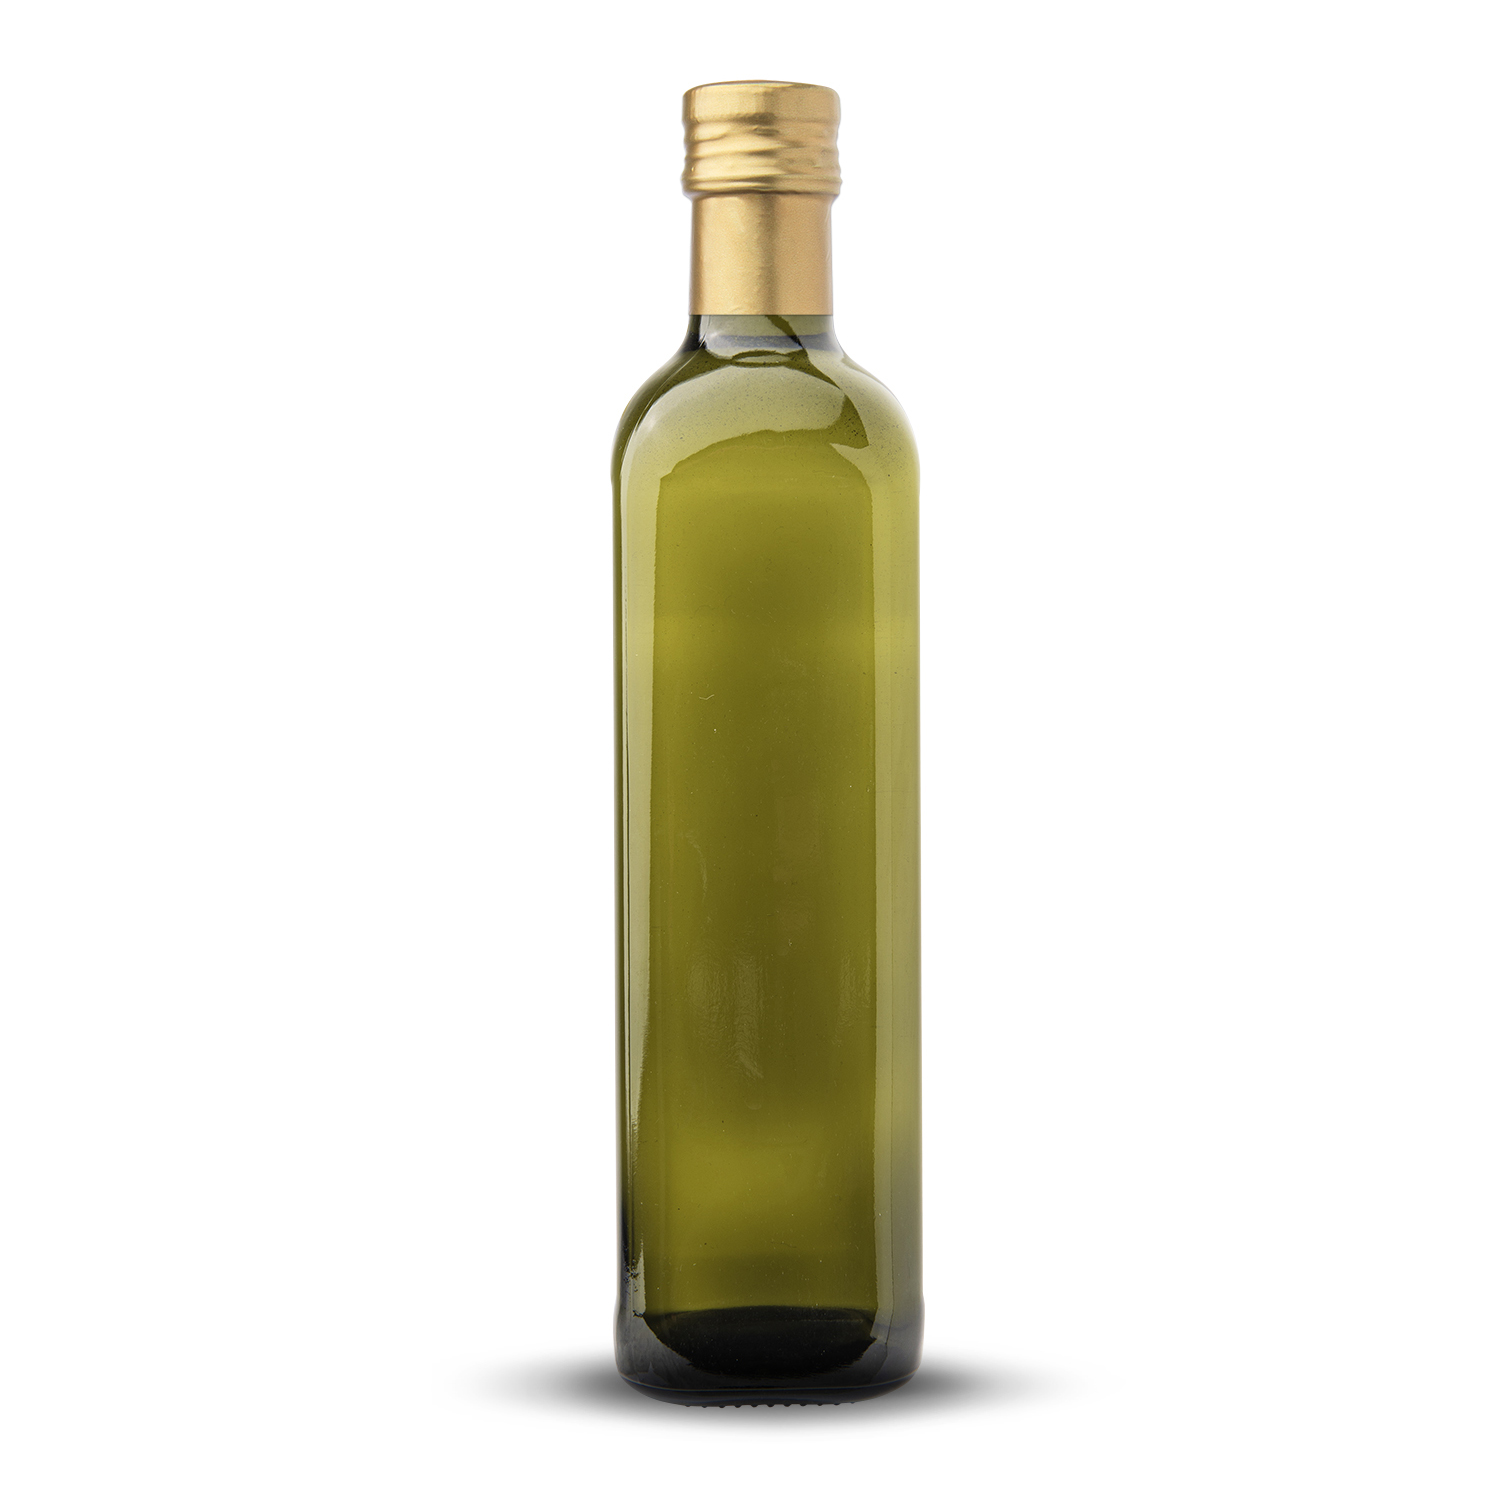 Customize ORGANIC EXTRA VIRGIN OLIVE OIL - EXTRA VIRGIN OLIVE OIL - PURE OLIVE OIL - POMACE OLIVE OIL  GRAPESEED OIL  Private Label, UMBRIA OLII INTERNATIONAL SPA , 100% Italy, condiments, EDIBLE OILS